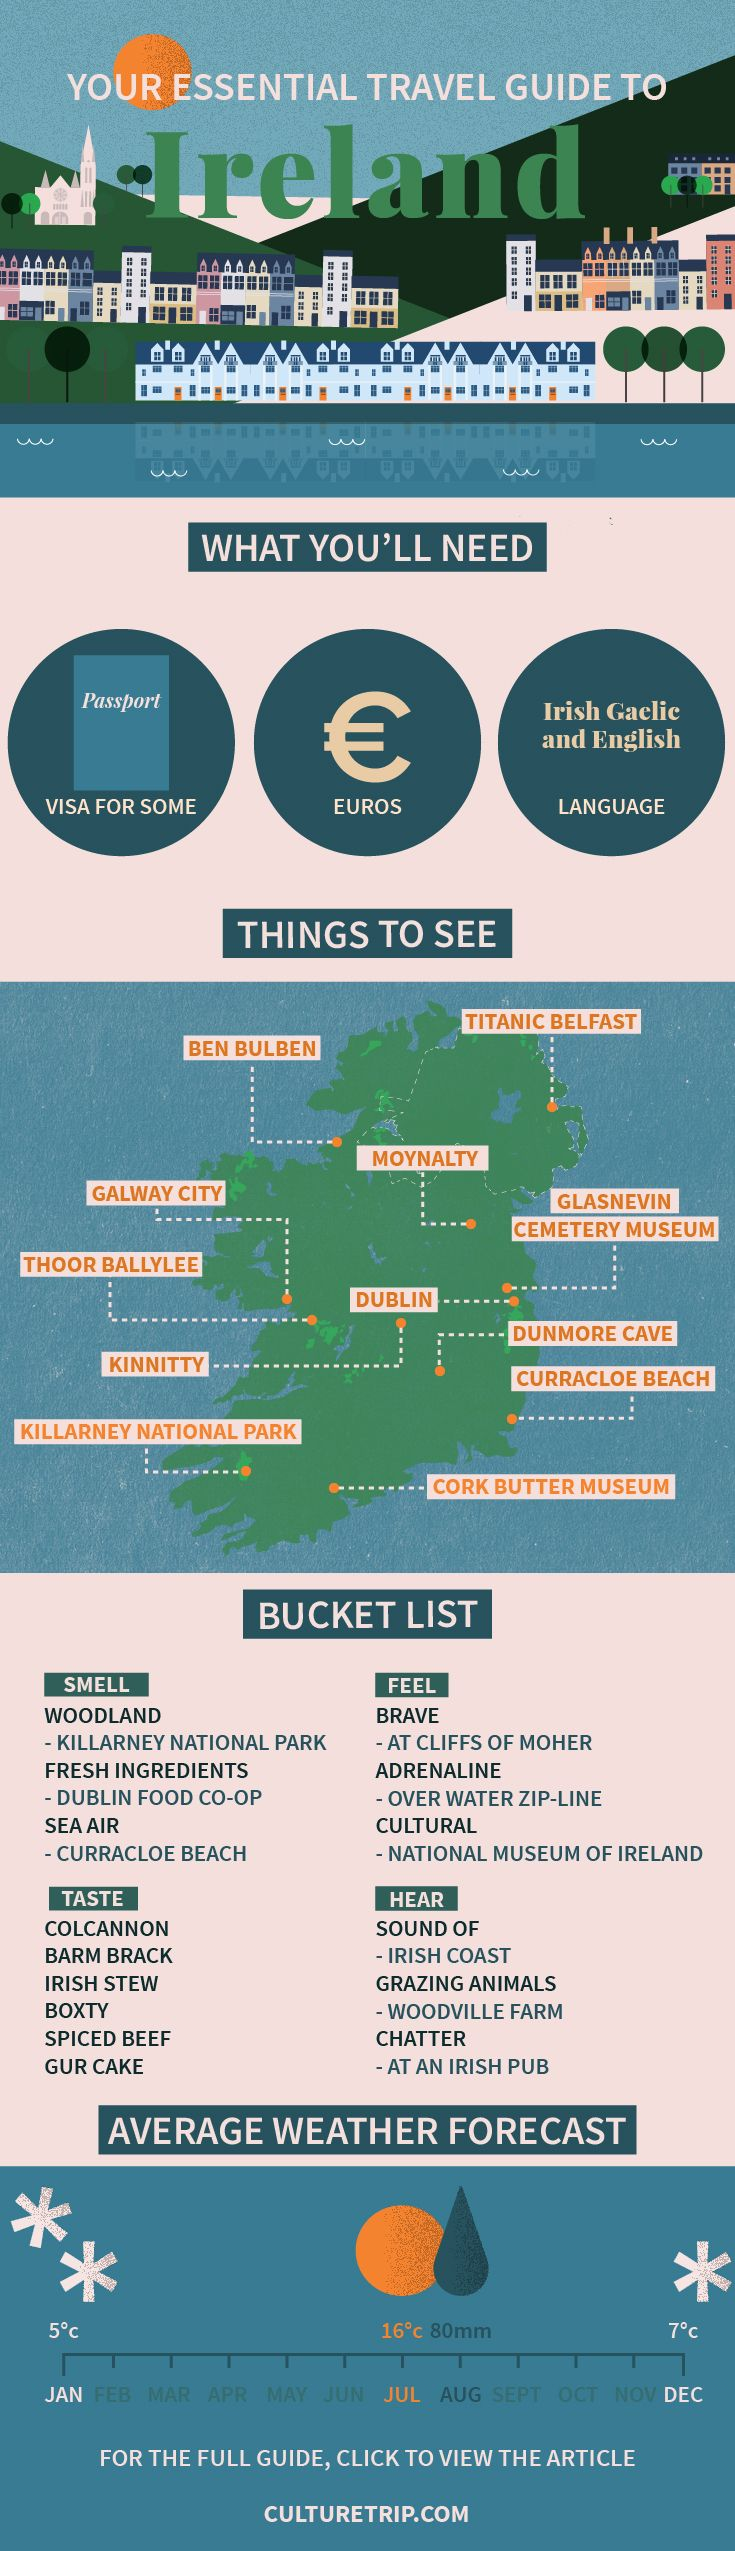 Your Essential Travel Guide to Ireland (Infographic) |Ireland, Dublin, weekend break, Europe, bucket list, wanderlust, adventure, challenge, coffee, bar, food, must try, Summer, Beach